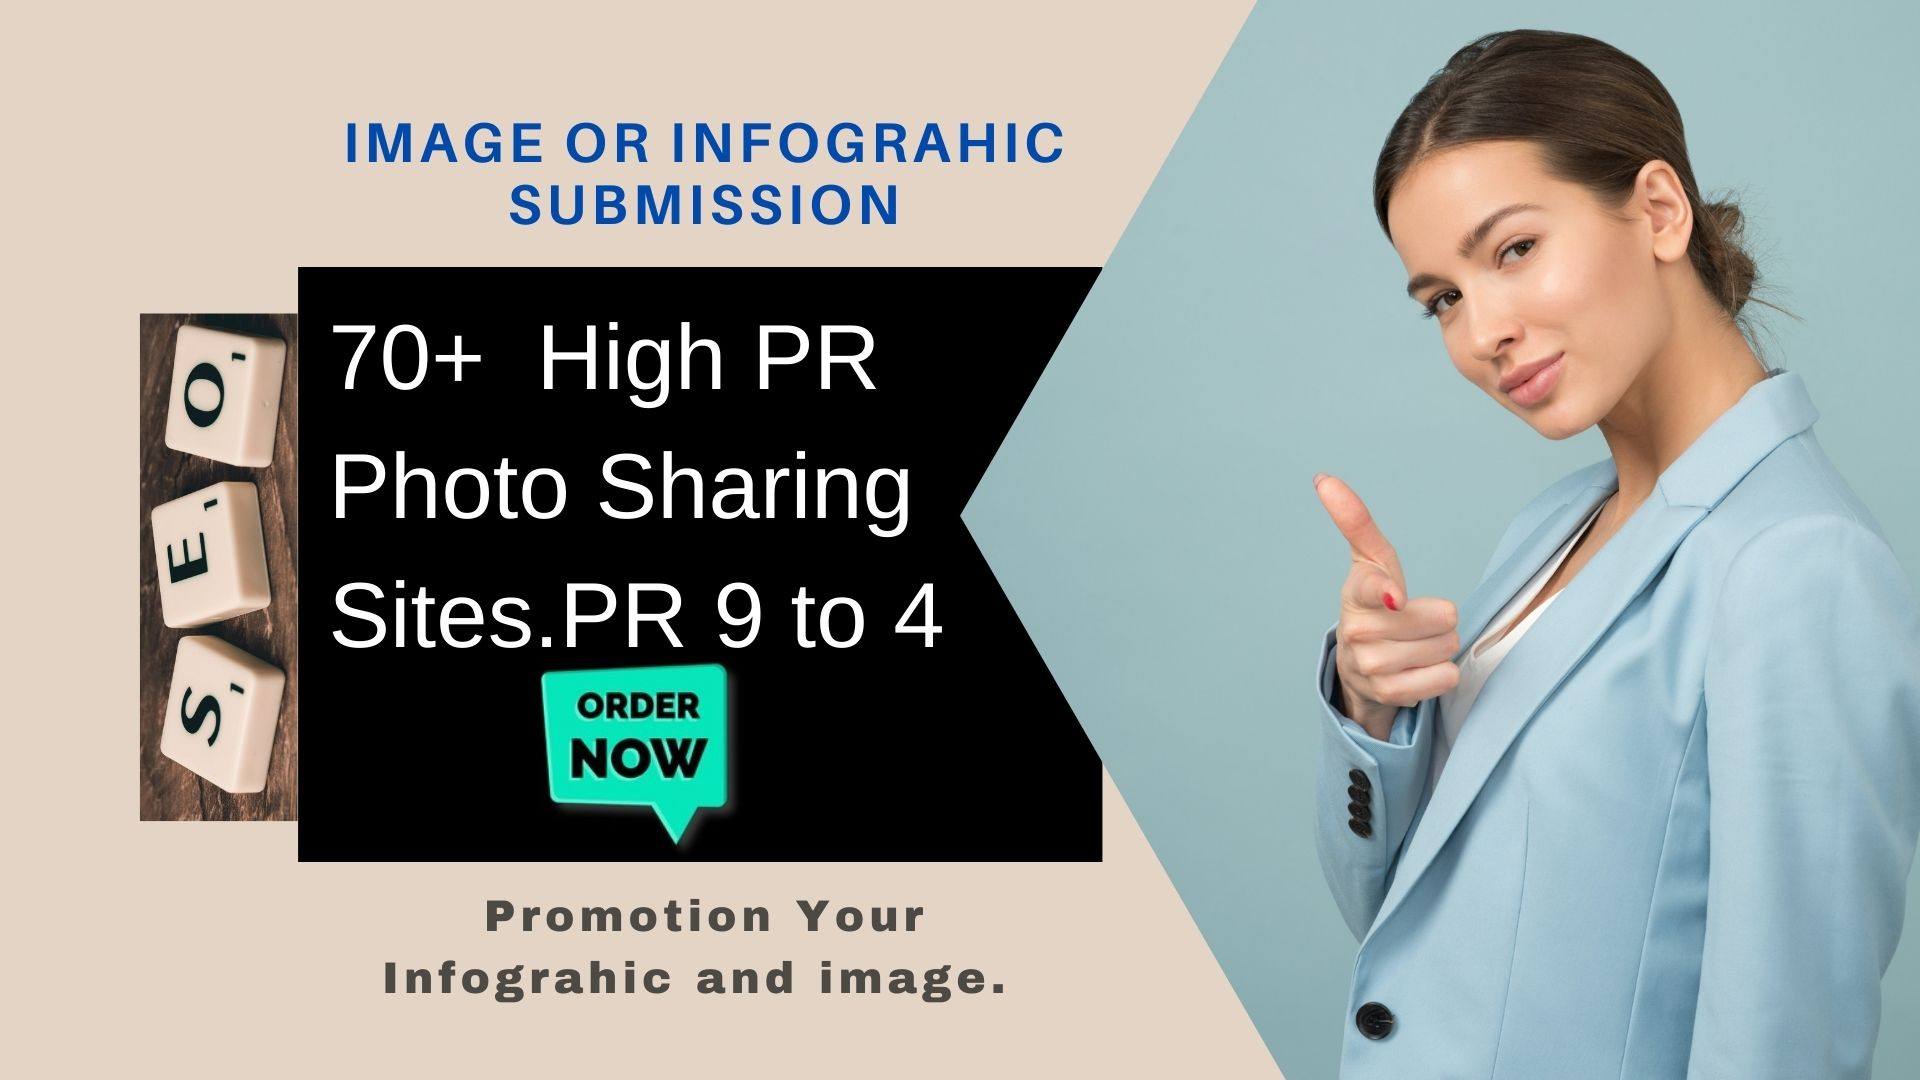 i will do 3 infographic or image submission in top image shareing sites